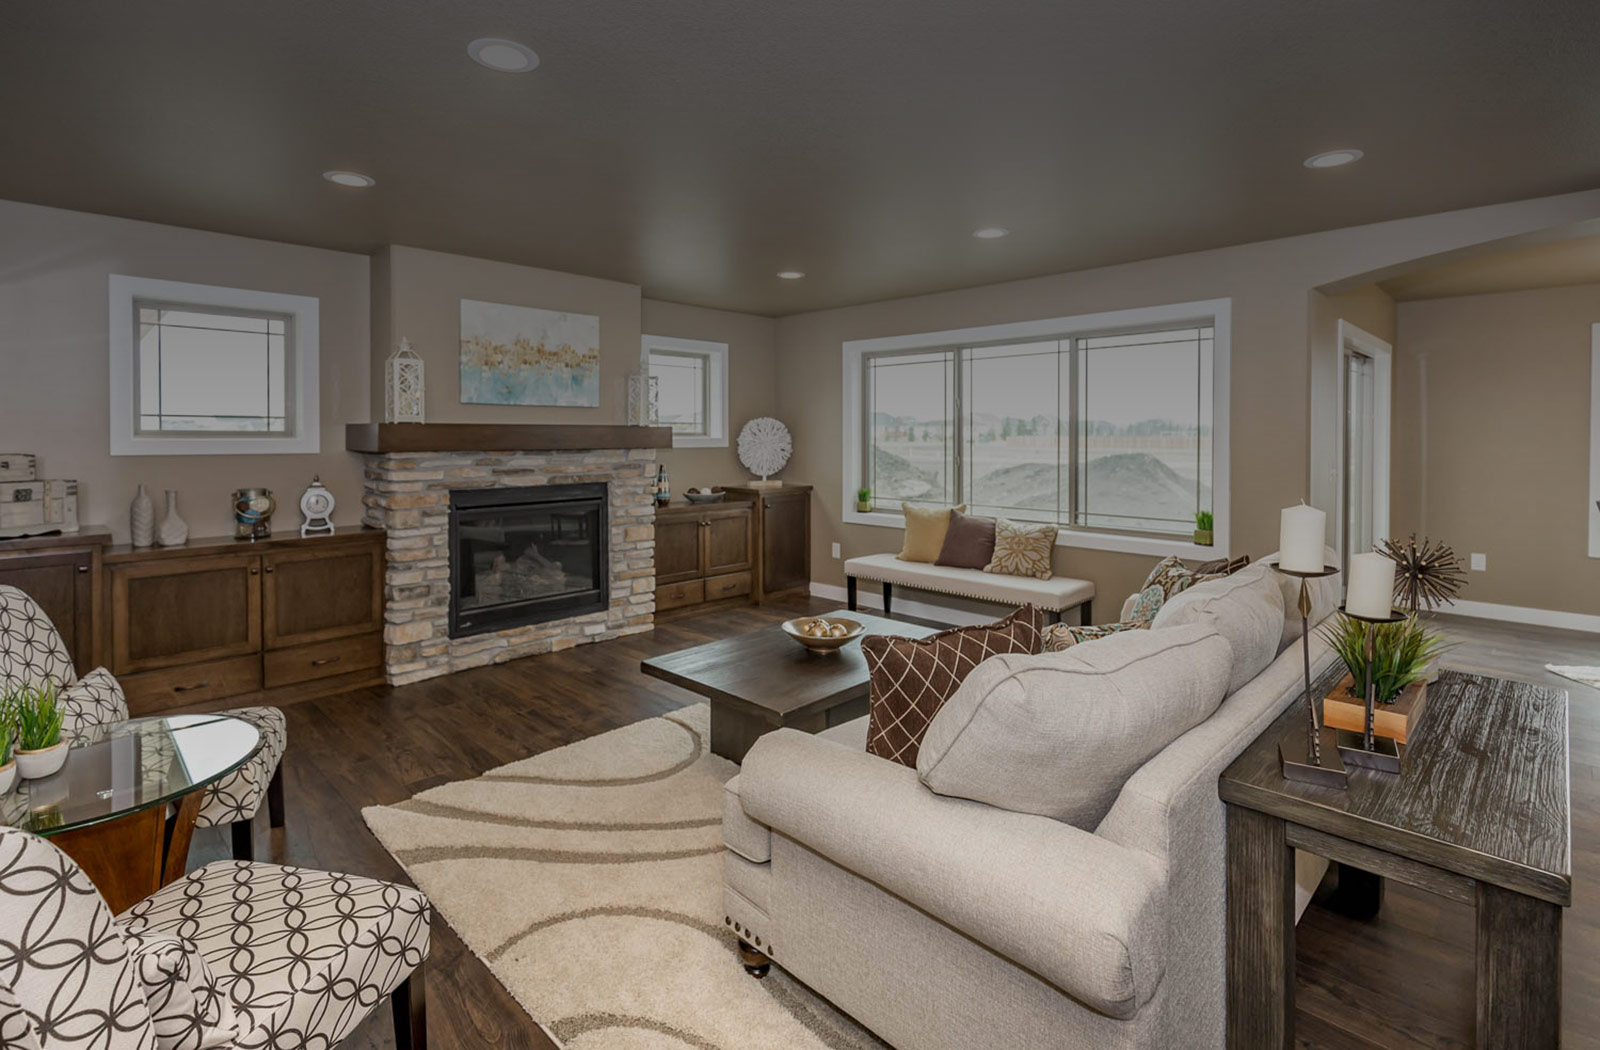 Platinum Homes Parade of homes 2019 family room